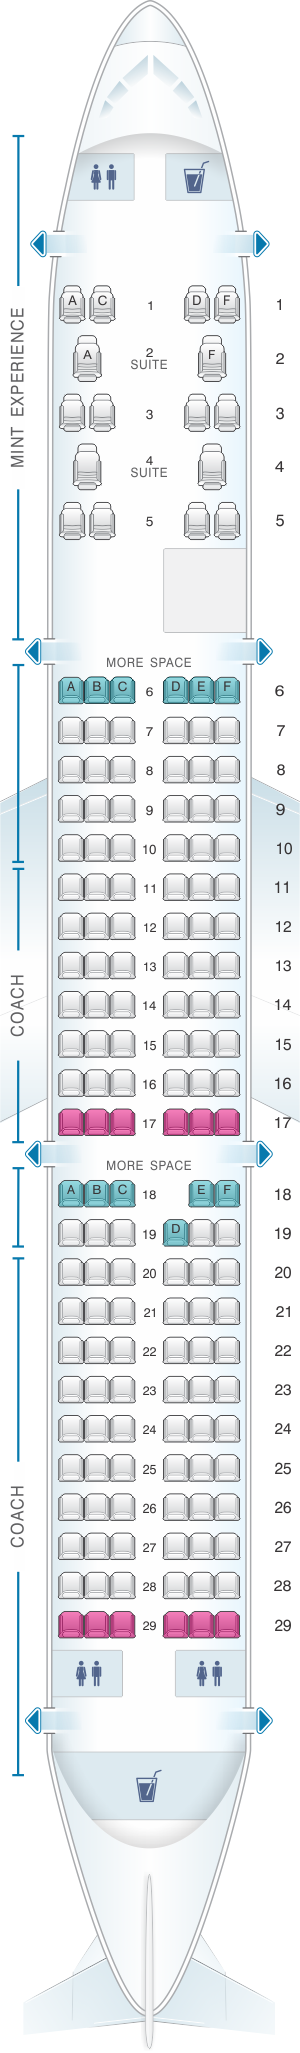 Seat Map Jetblue Airways Airbus A321 Config 2